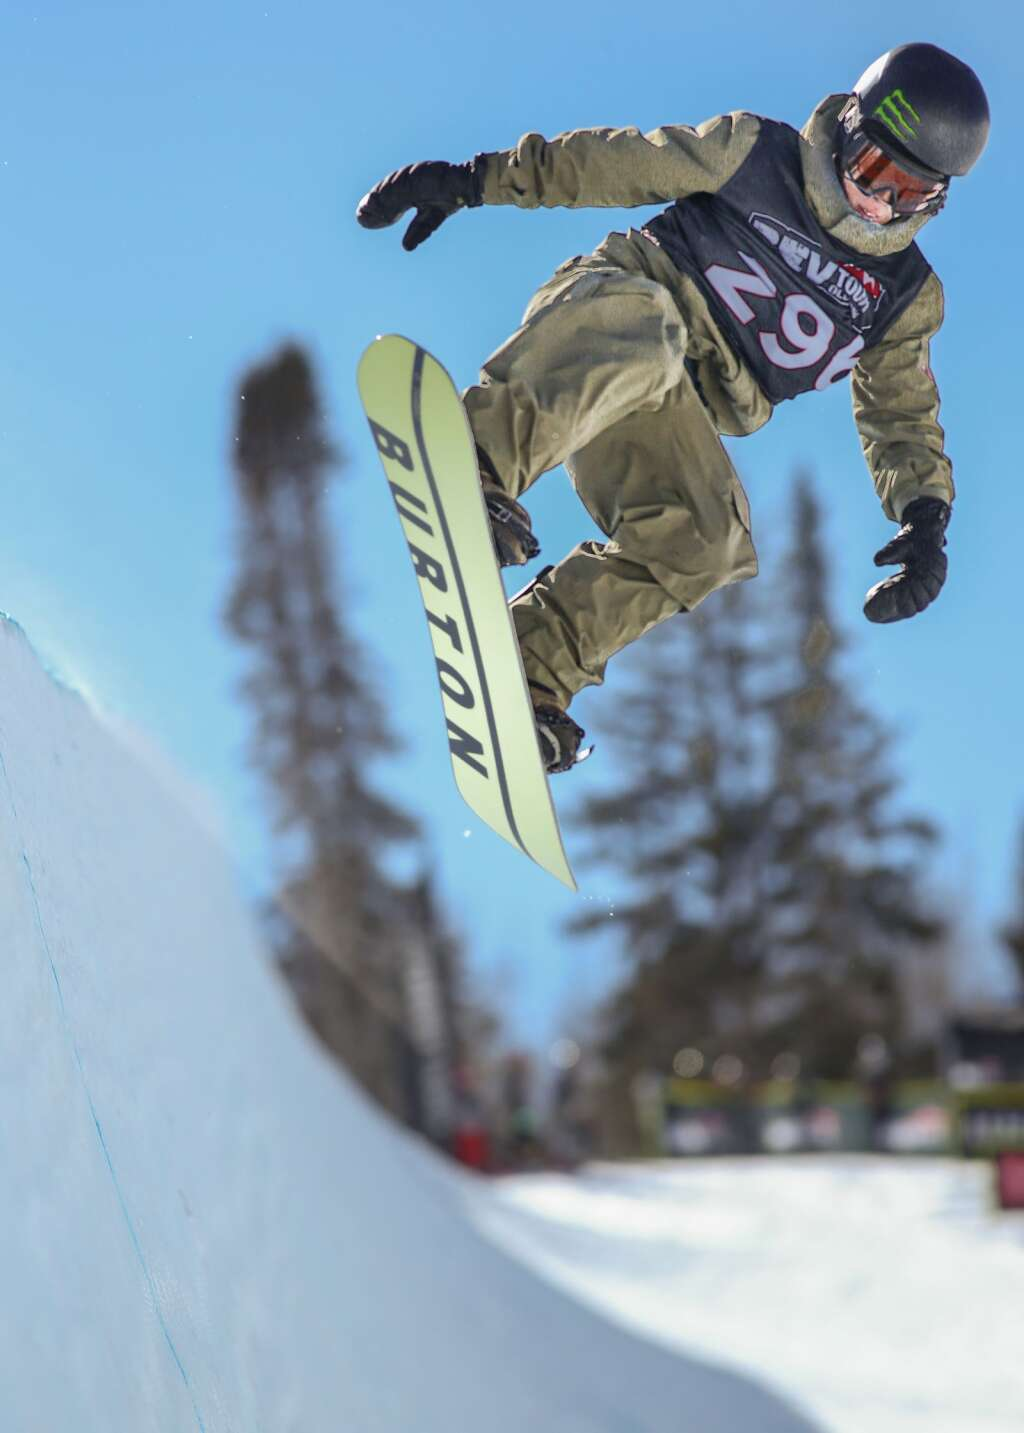 Japan's Ayumu Hirano competes in the men's snowboard halfpipe contest at the U.S. Revolution Tour stop on Thursday, Feb. 25, 2021, at Buttermilk Ski Area. Photo by Austin Colbert/The Aspen Times.